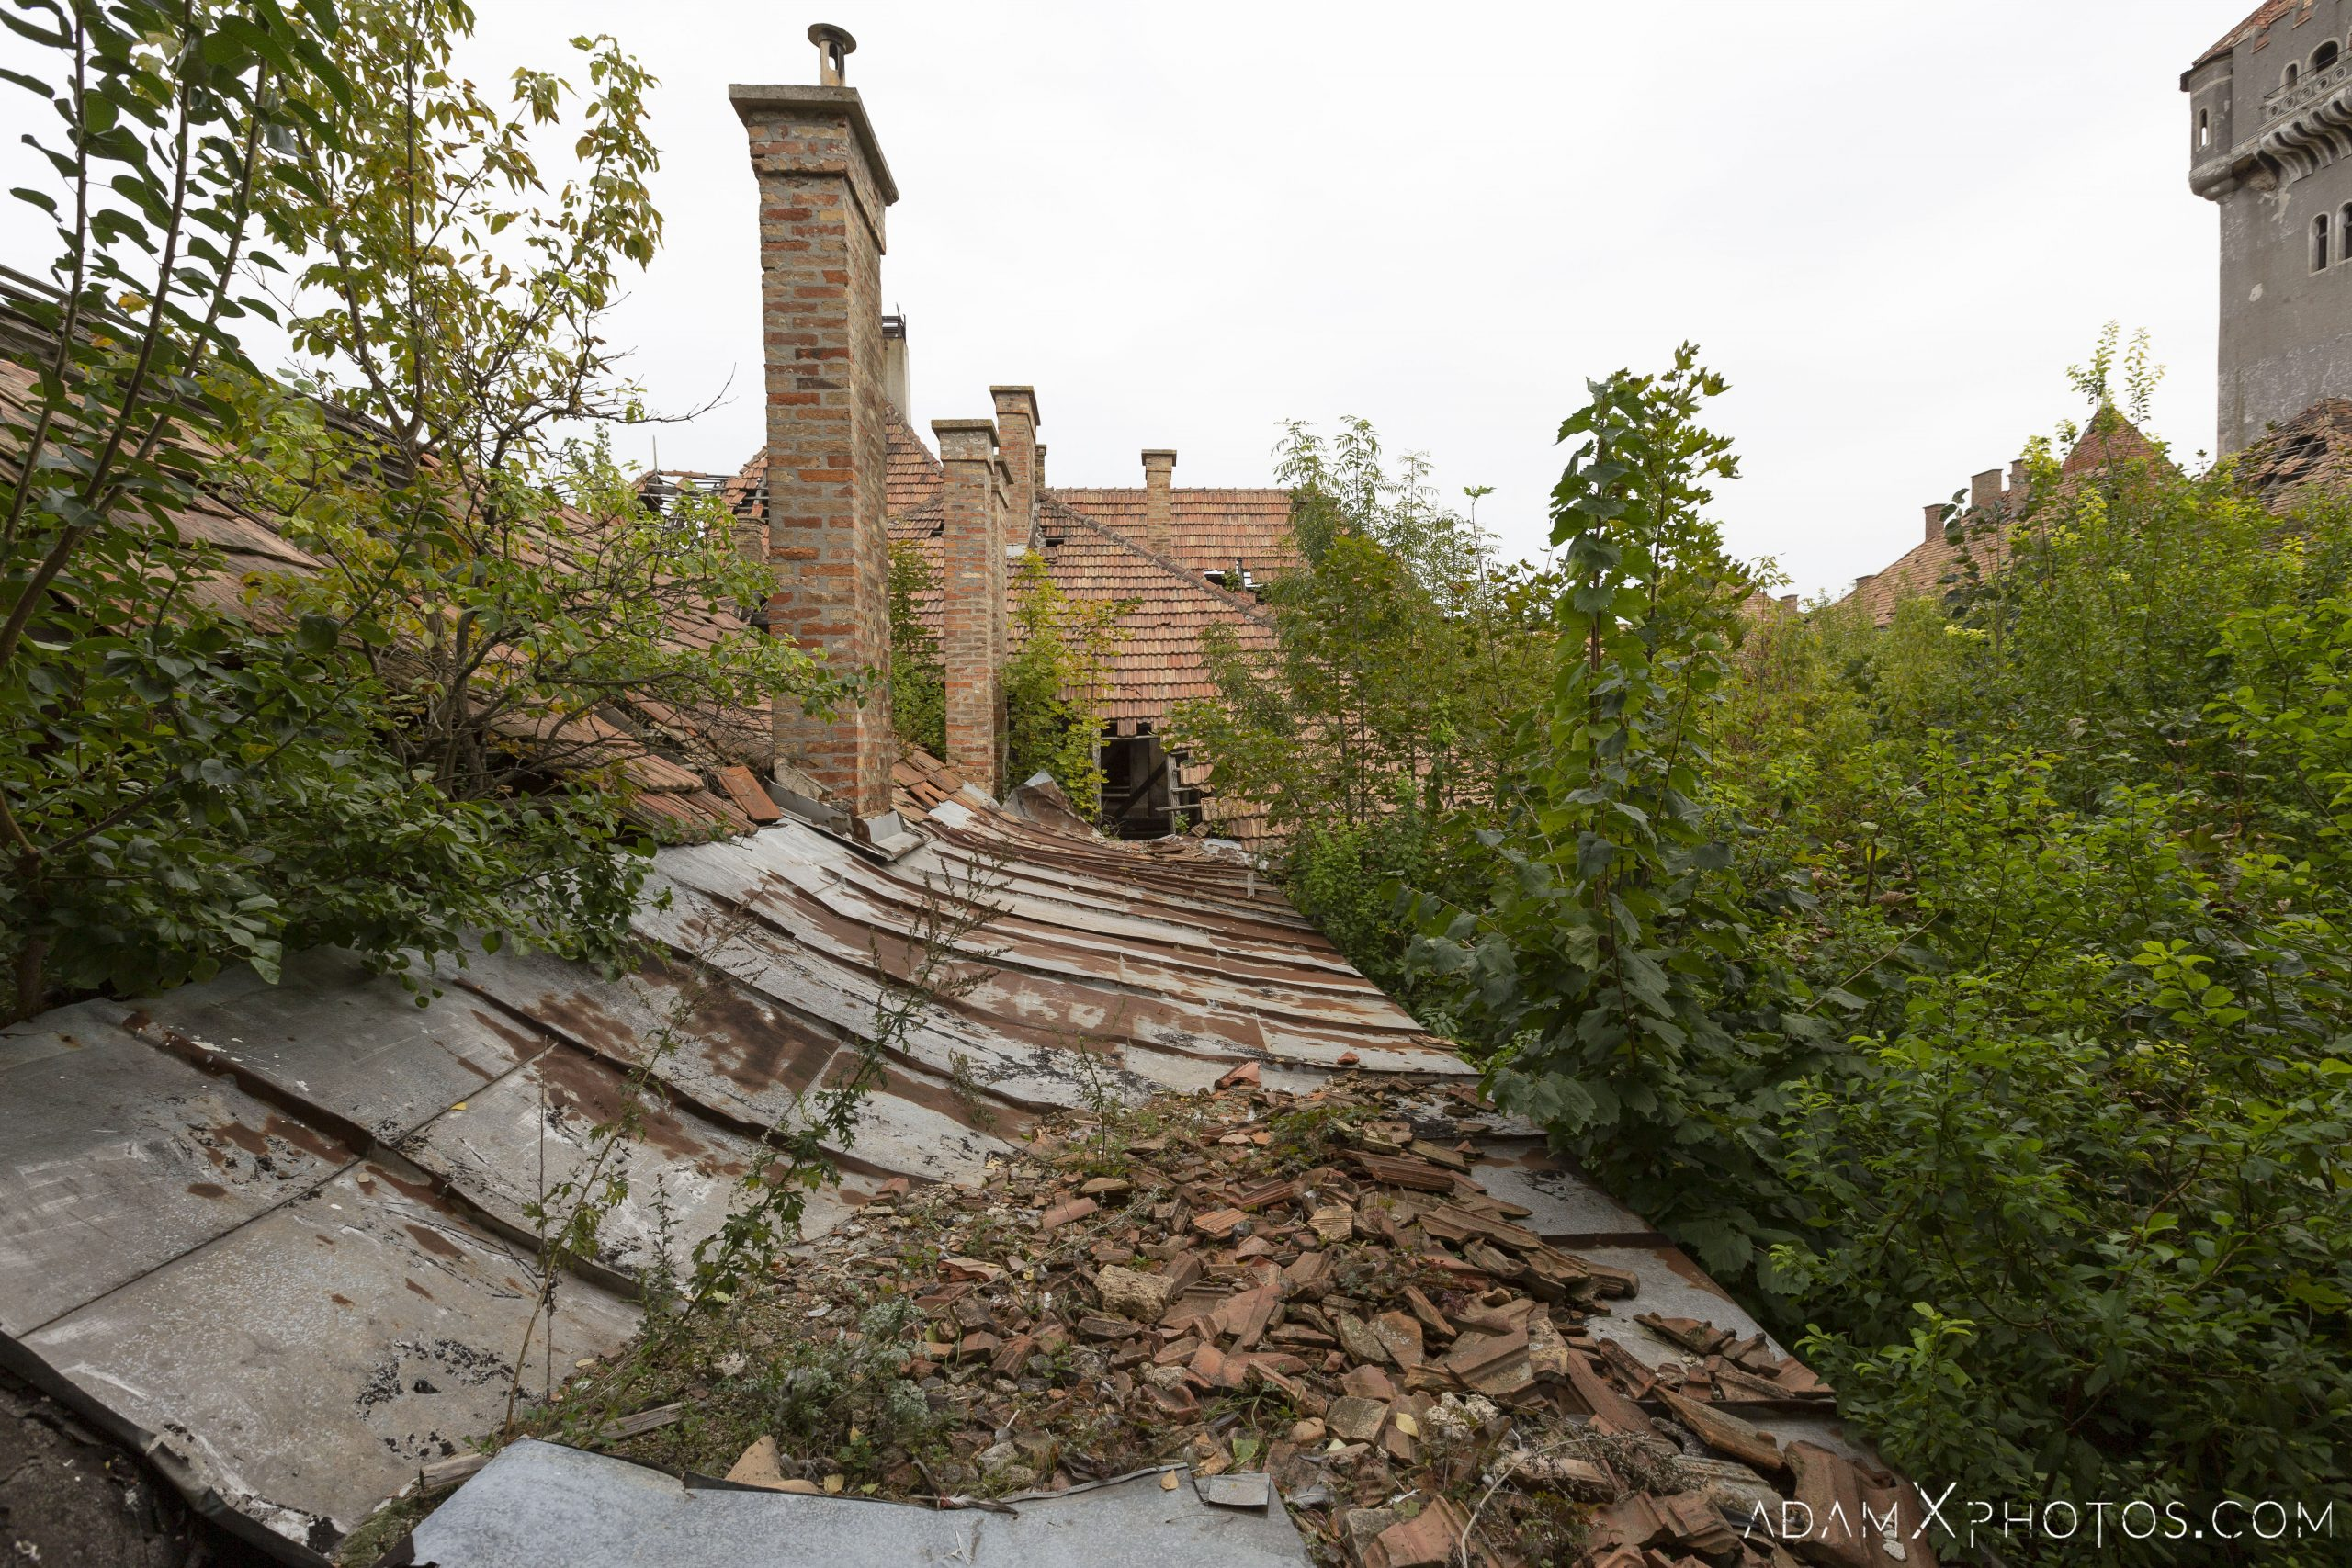 Roof rooftop dangerous Hajmaskér Barracks Hungary Adam X Urbex Urban Exploration Access 2018 Abandoned decay ruins lost forgotten derelict location creepy haunting eerie